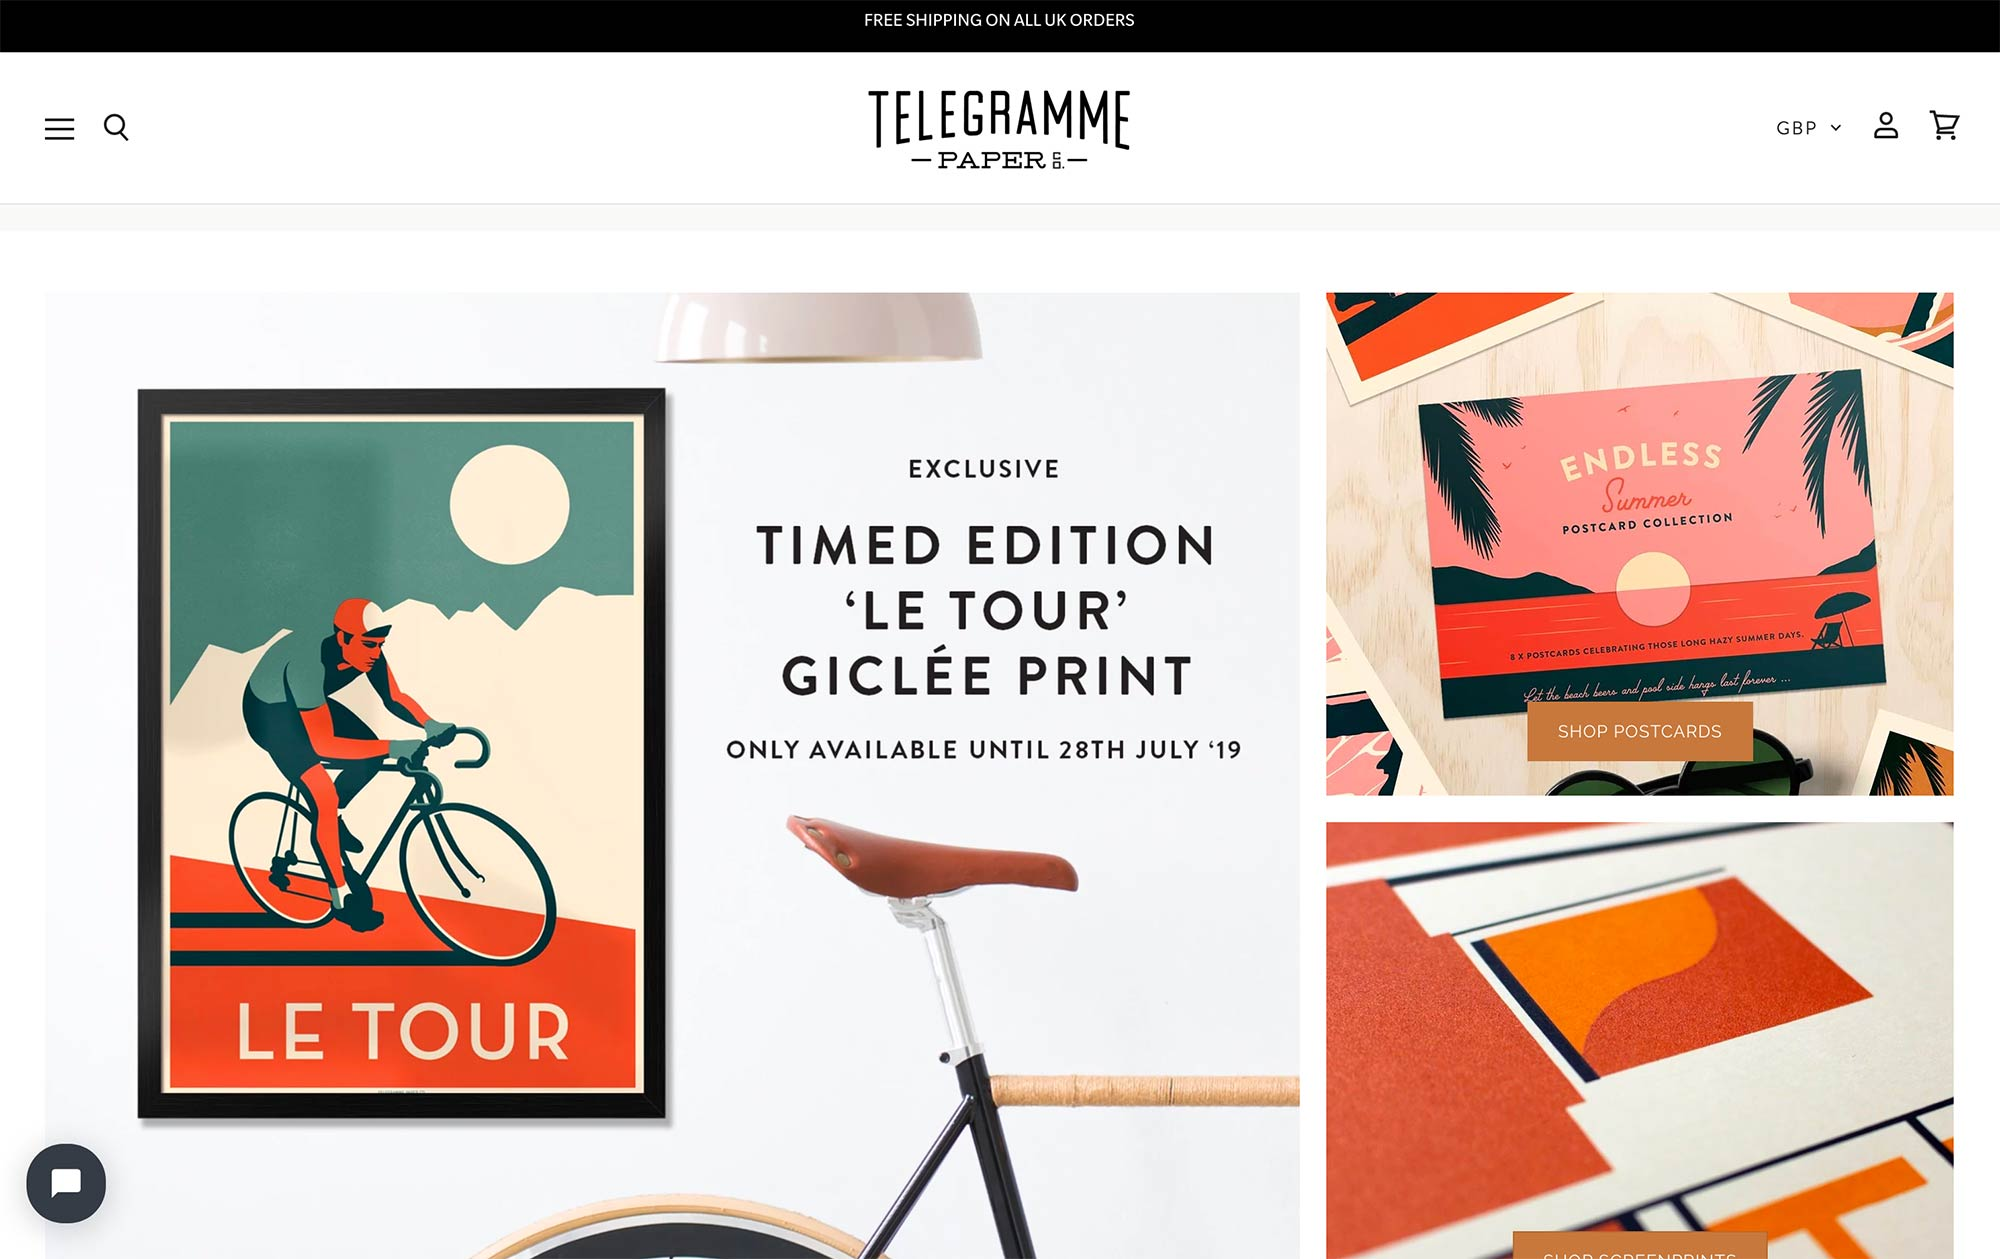 Telegramme Paper Co